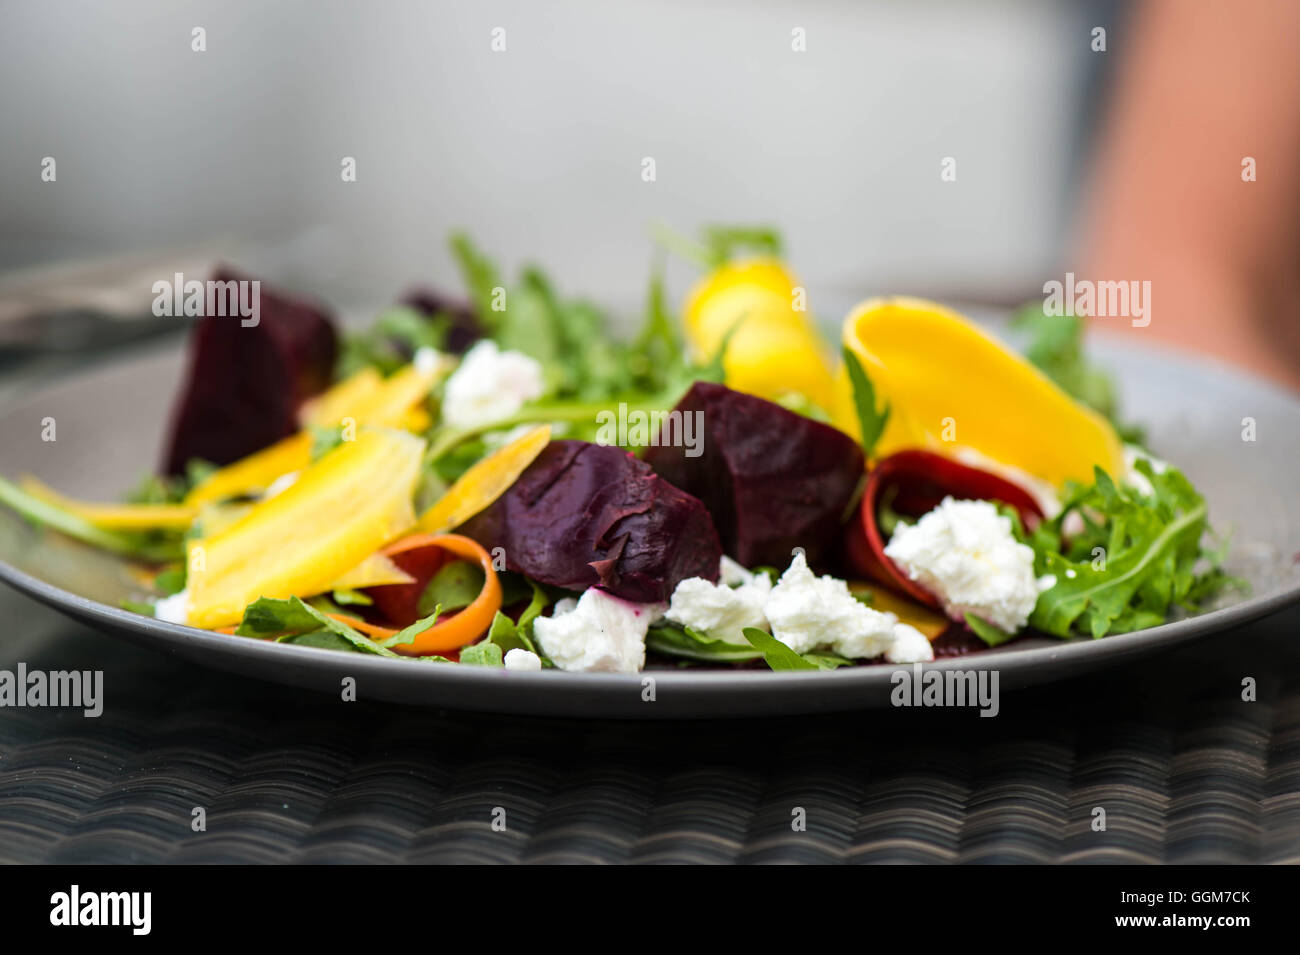 Mixed Vegetarian Salad Meal With Goats Cheese - Stock Image